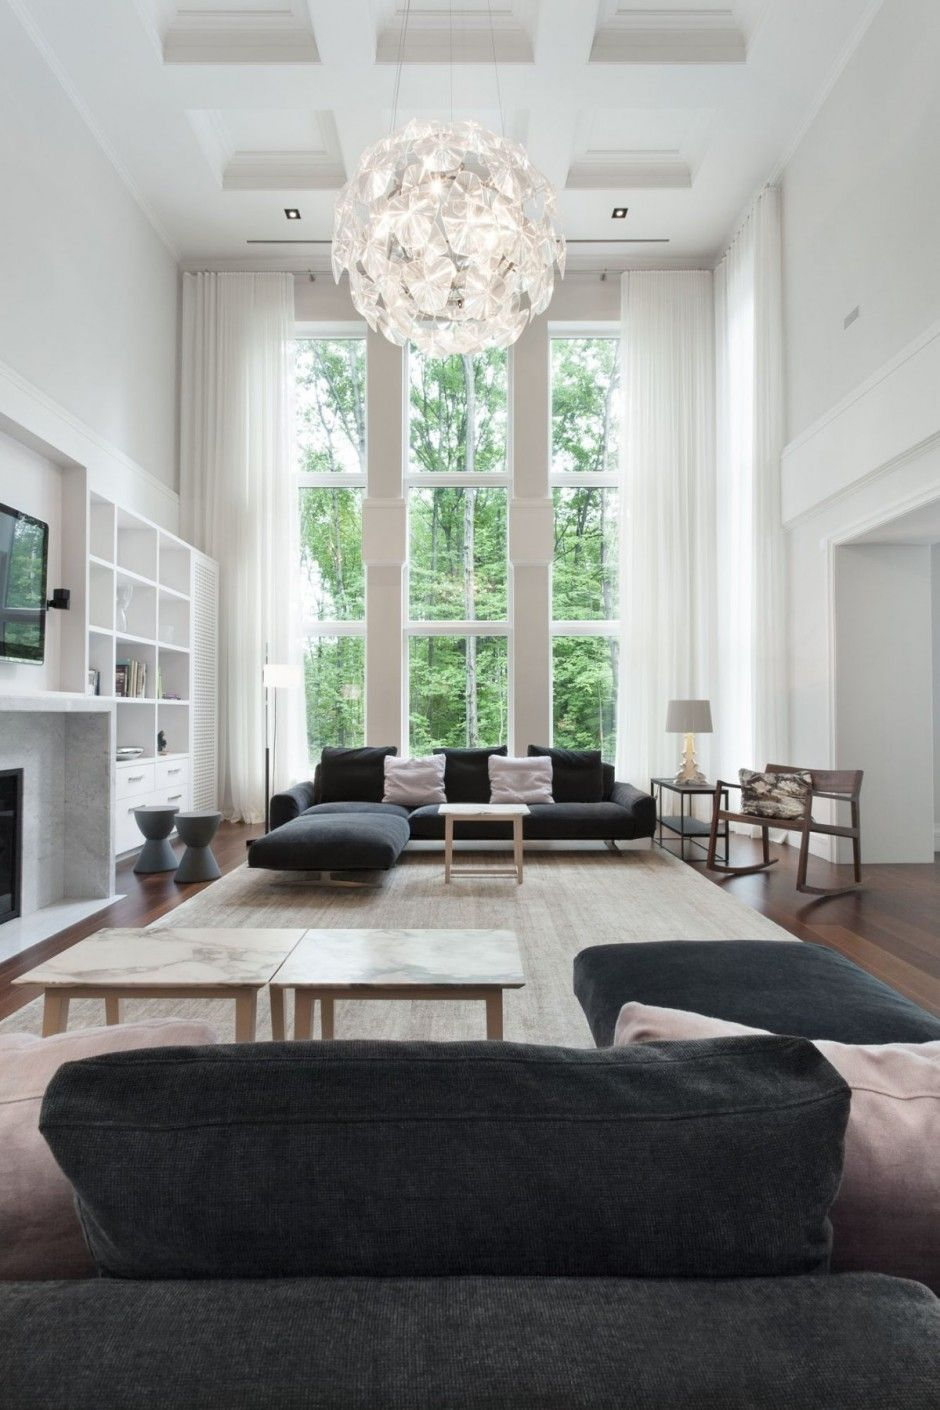 #livingroom #windowwall | Grand in space yet restrained in design. Comfort is the operative word. Quebec, Canada.1st view.